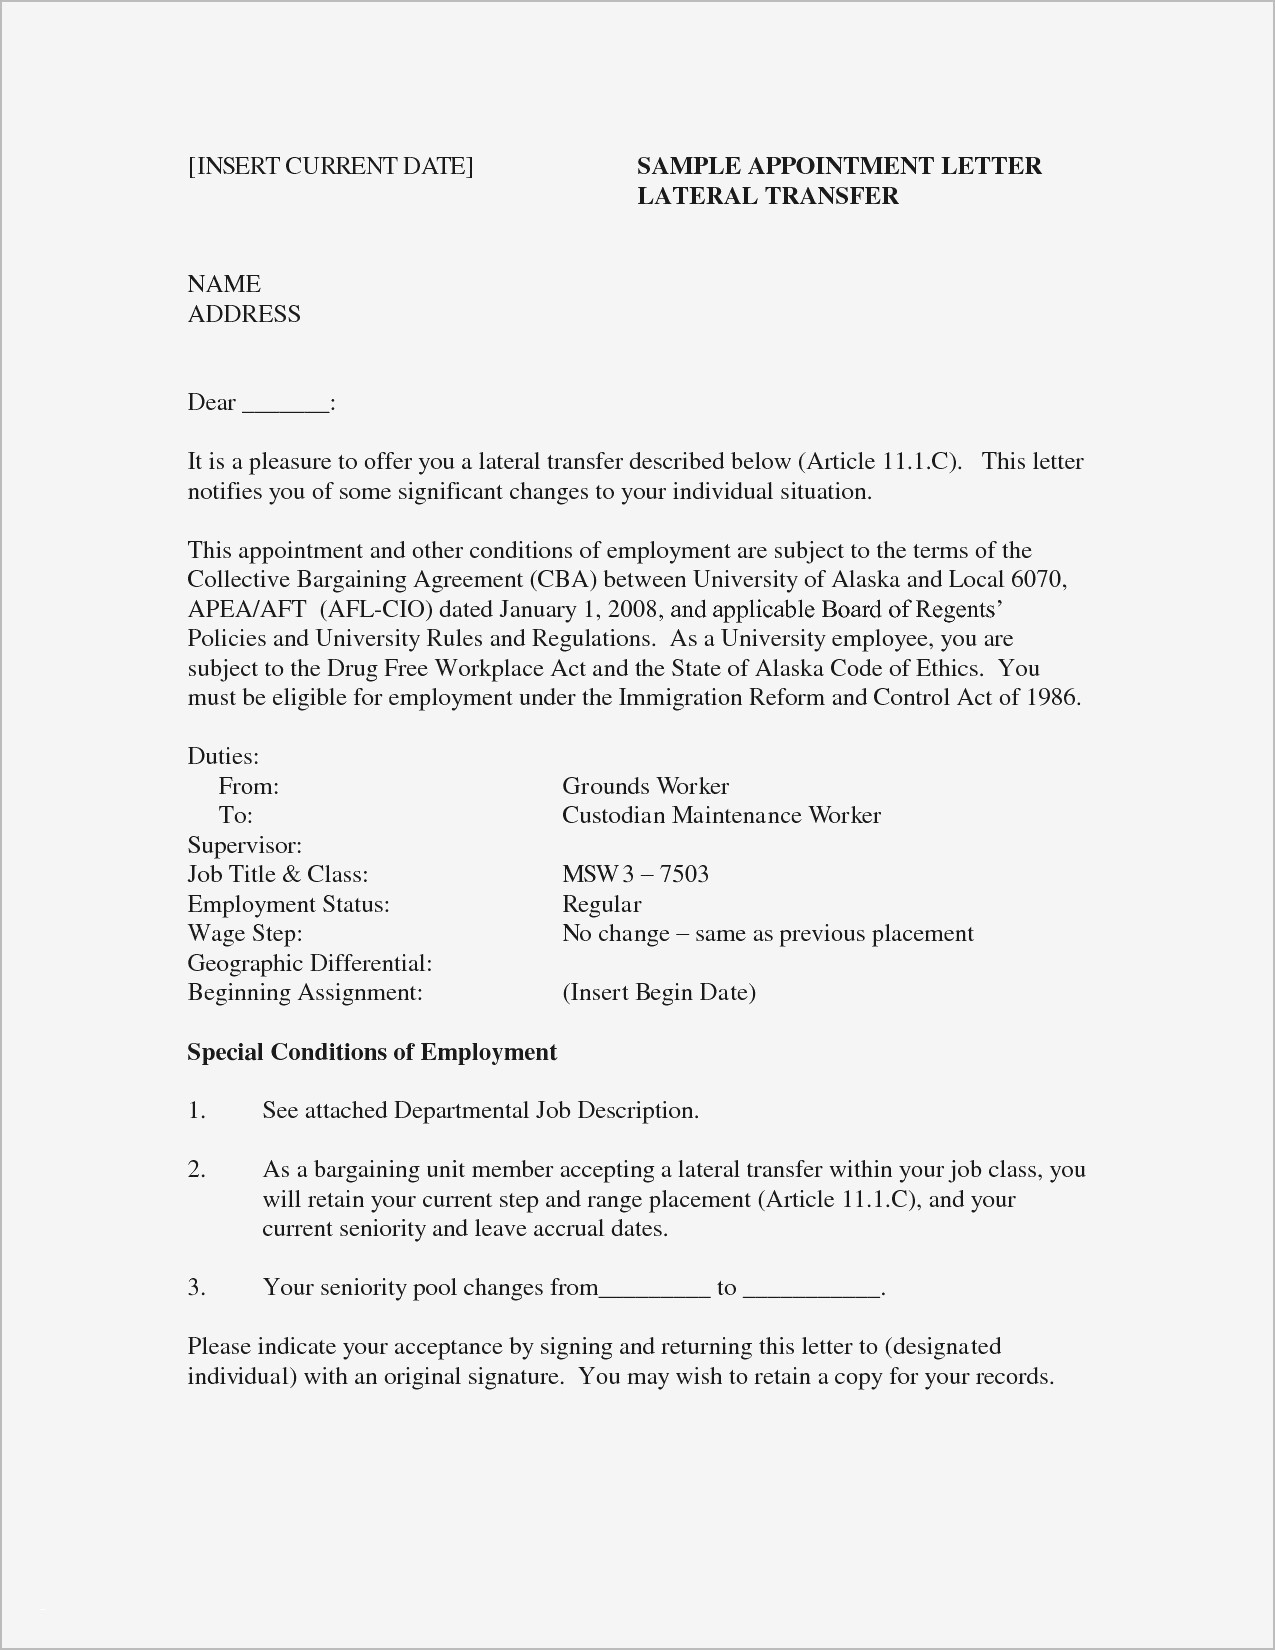 resume writing service Collection-Best Rated Resume Writing Services New Resume Review Services Best Fresh Resume 0d Resume For Substitute 4-s